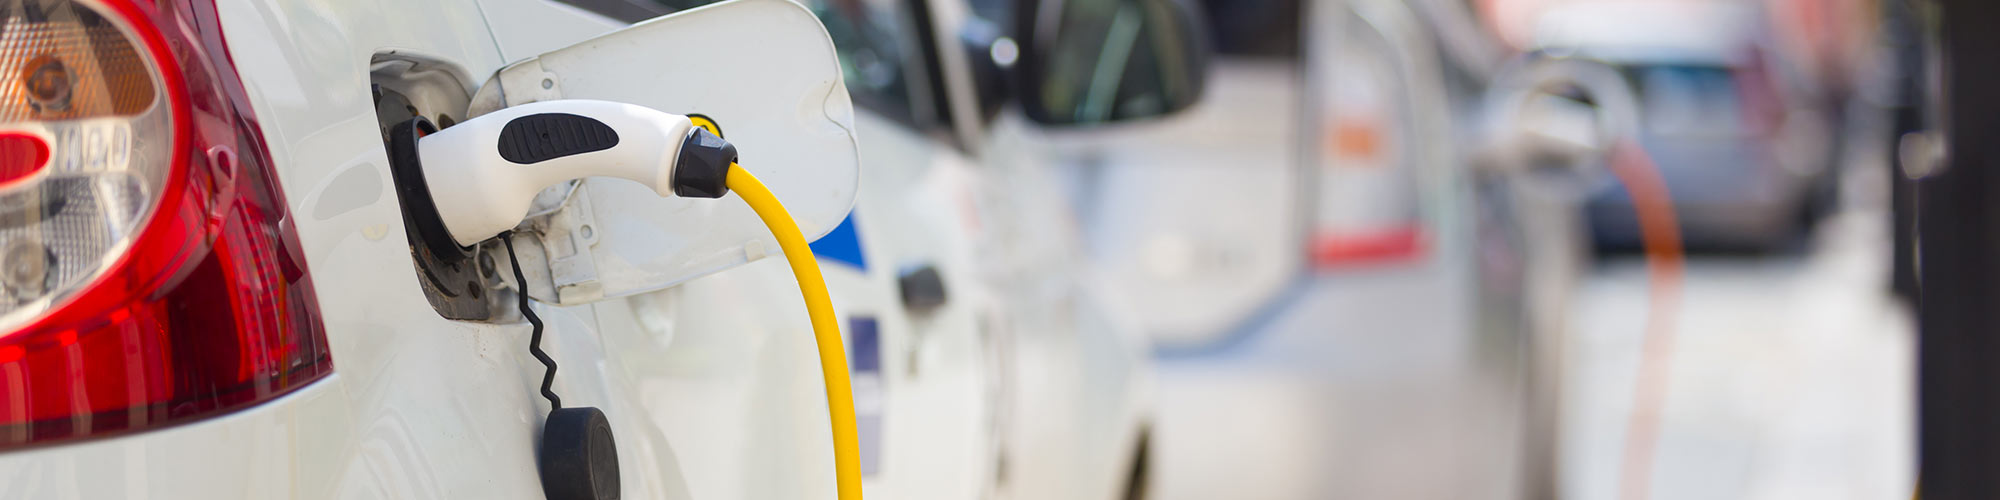 Electric mobility you can rely on